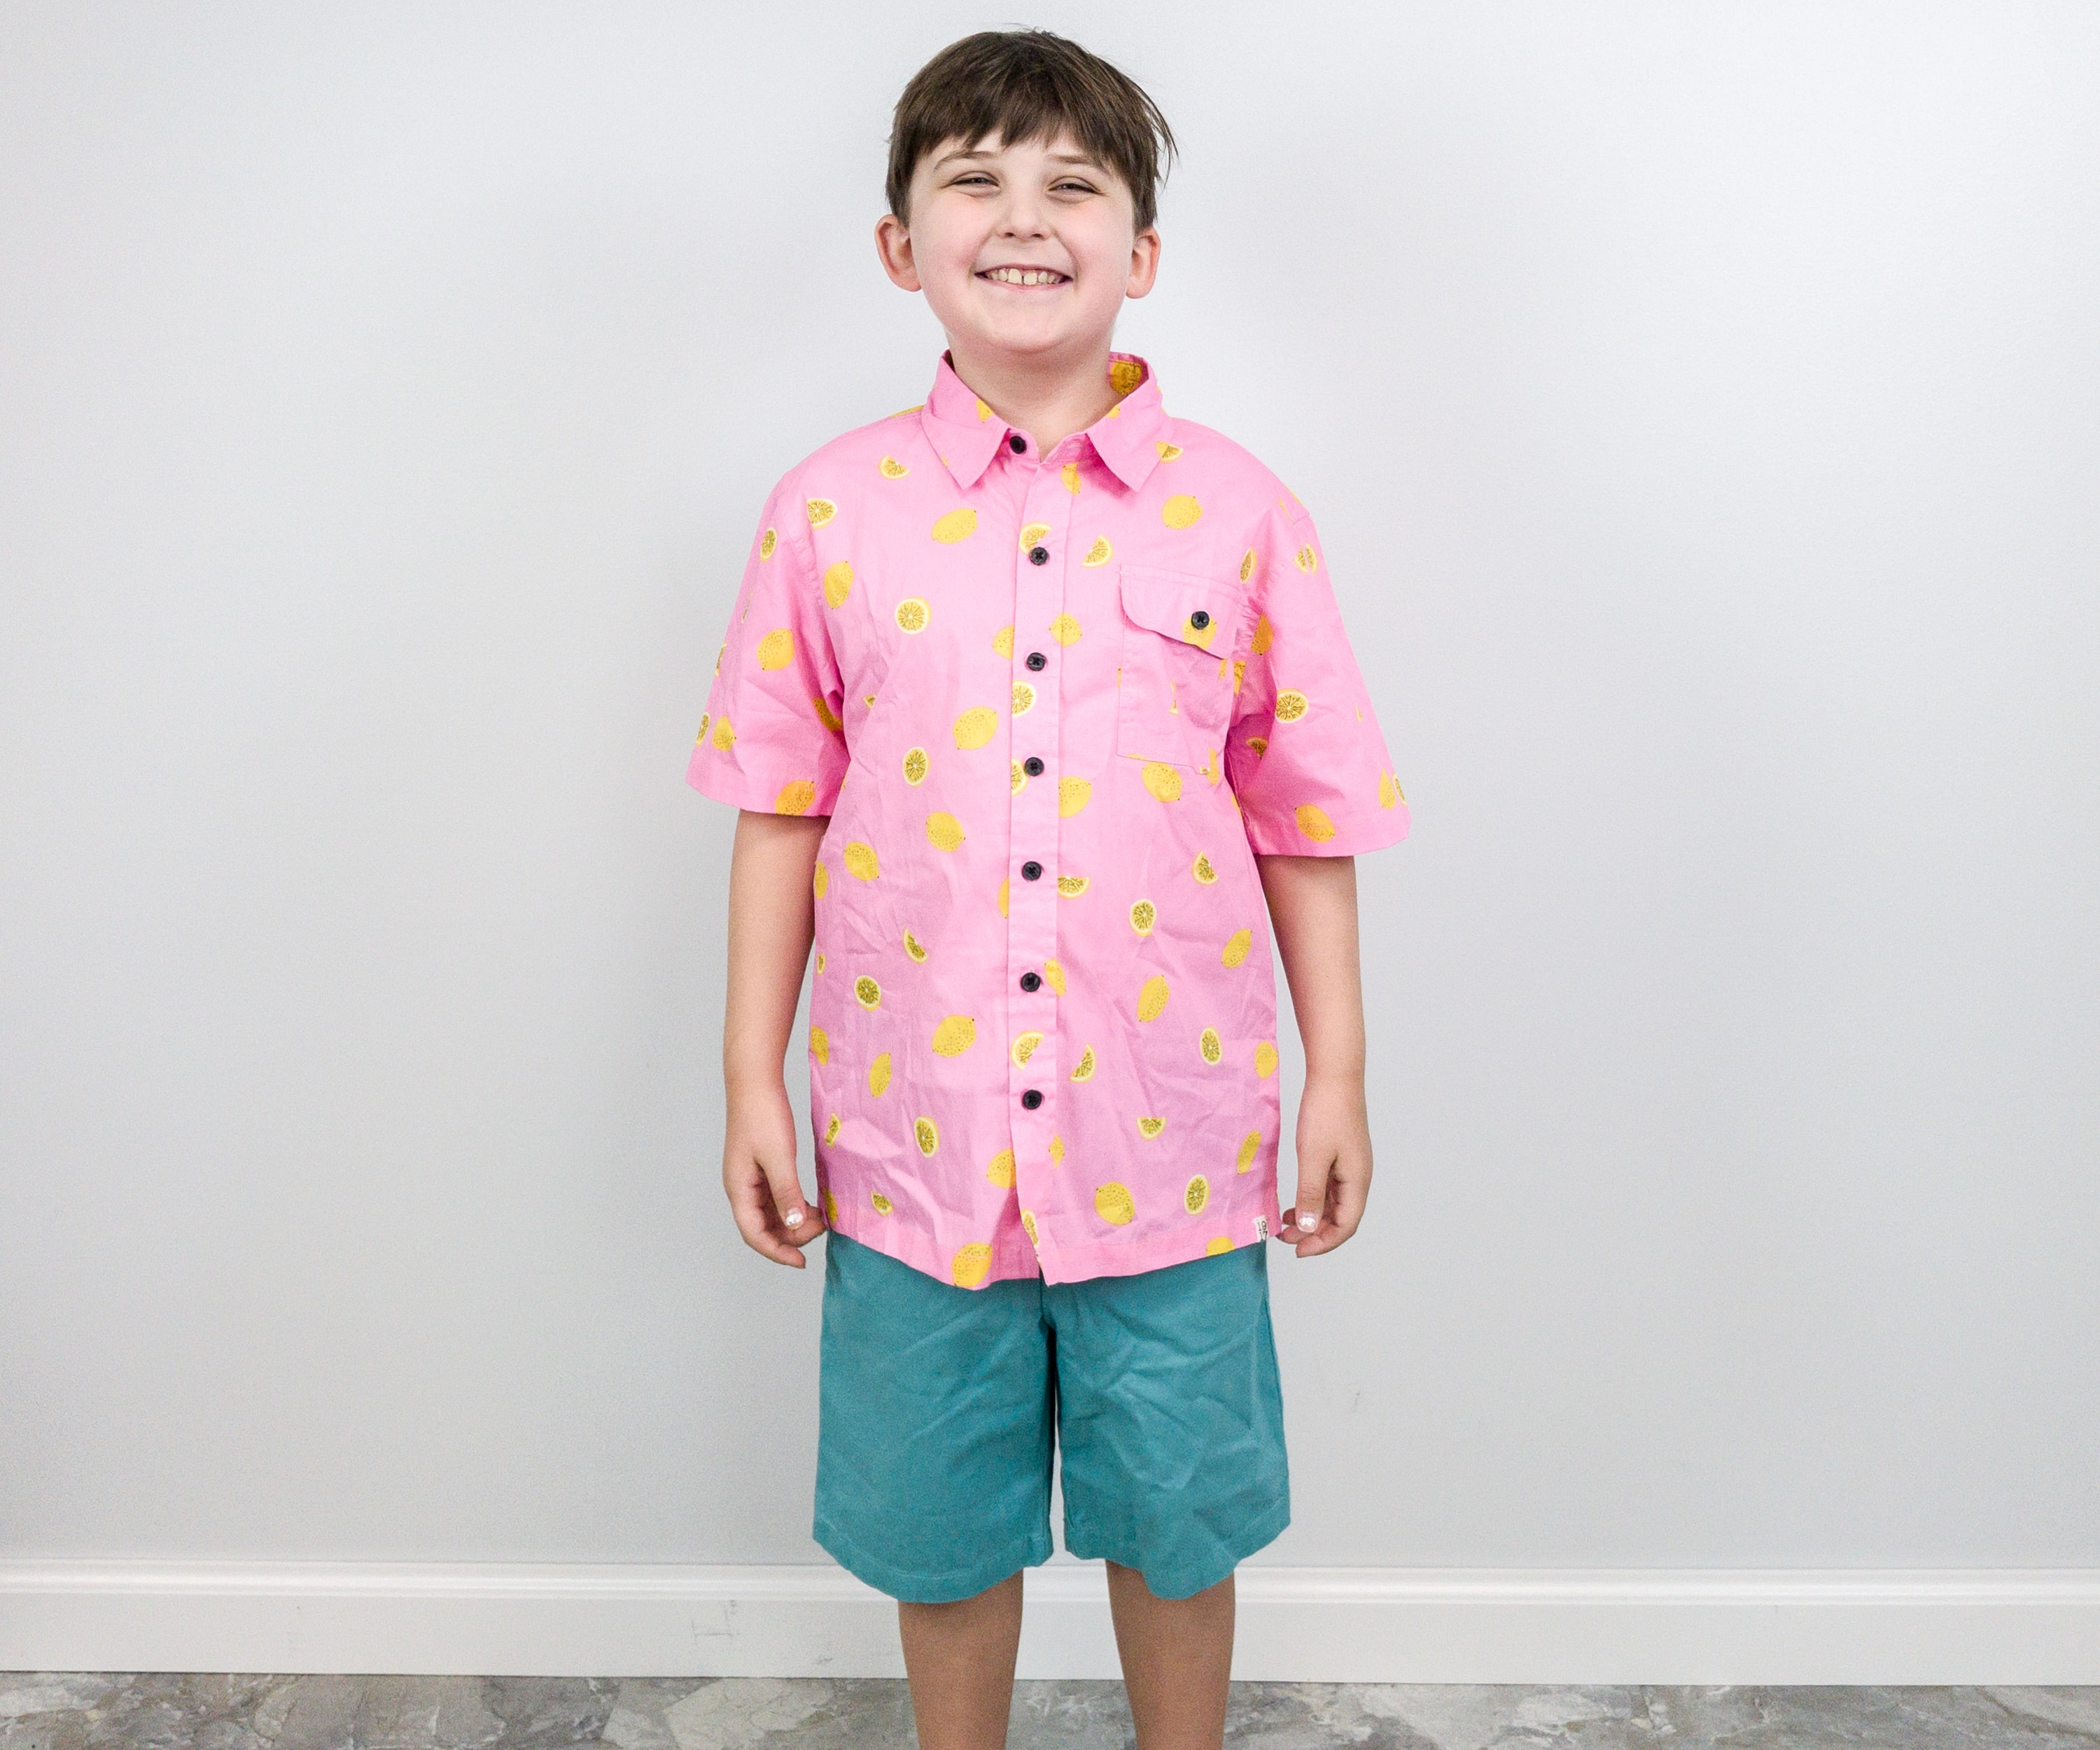 Stitch Fix Kids July 2019 Boys Review Hello Subscription,How To Save A Dying Bamboo Plant